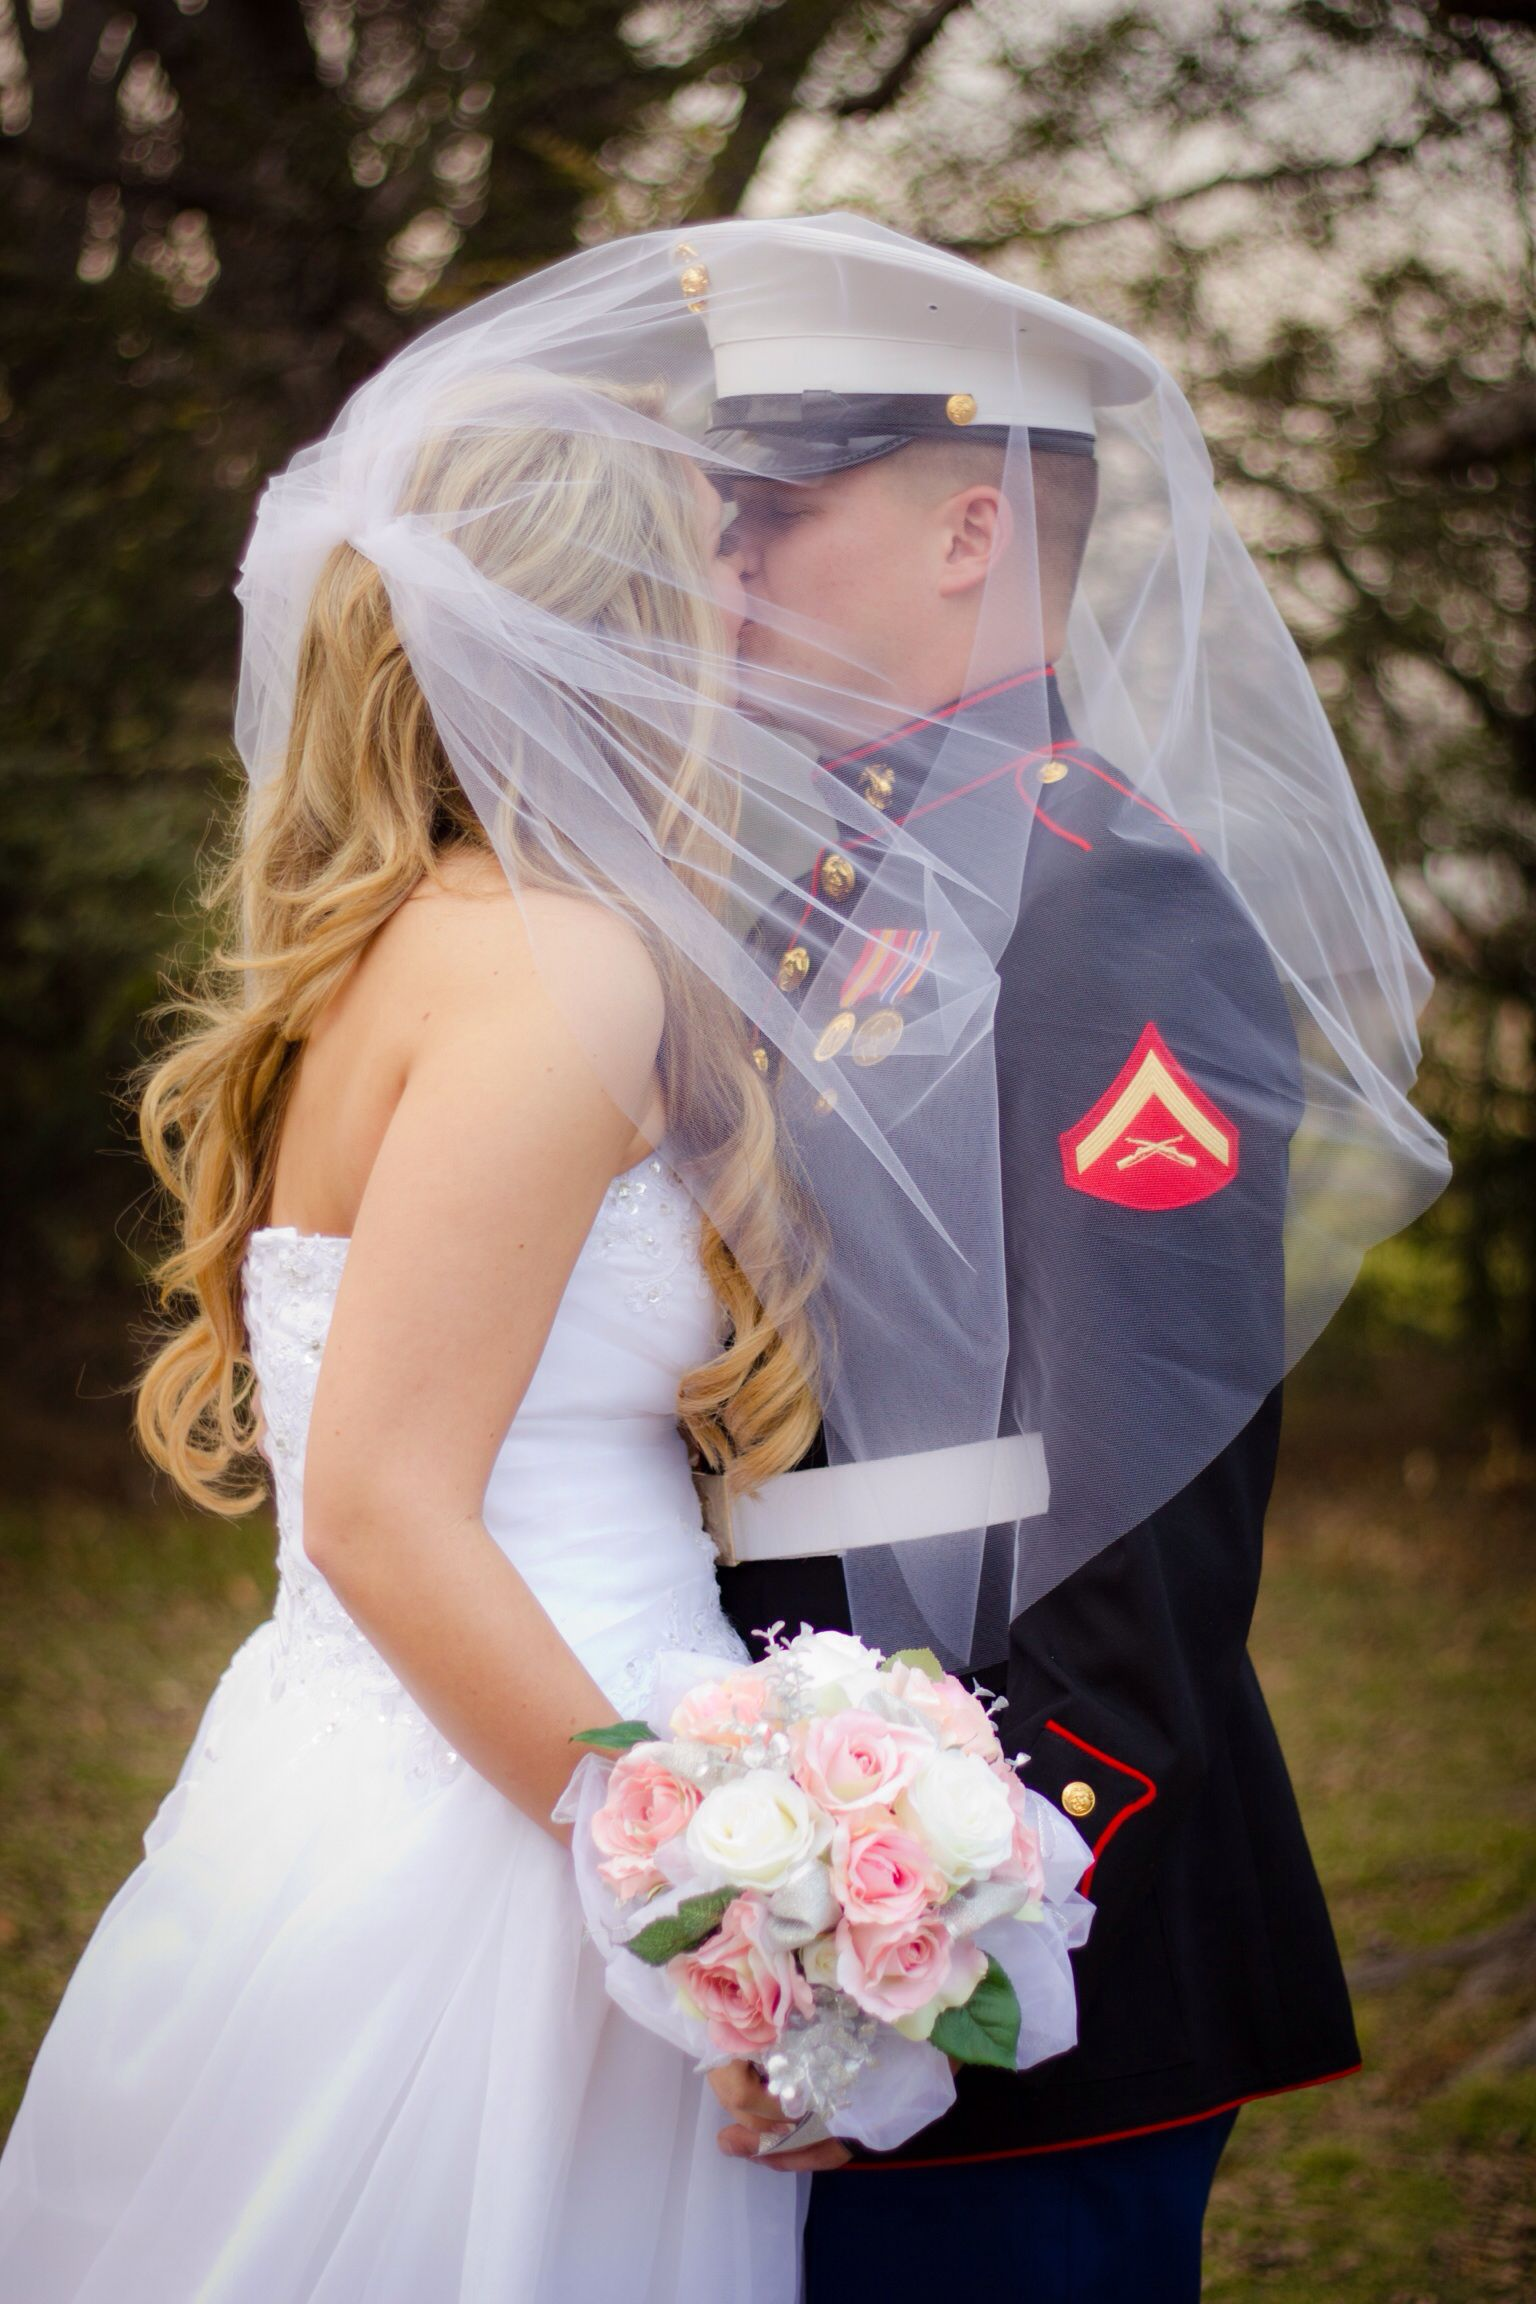 Wedding dress donations for military brides  Military wedding photos  Wedding gowns and pics  Pinterest